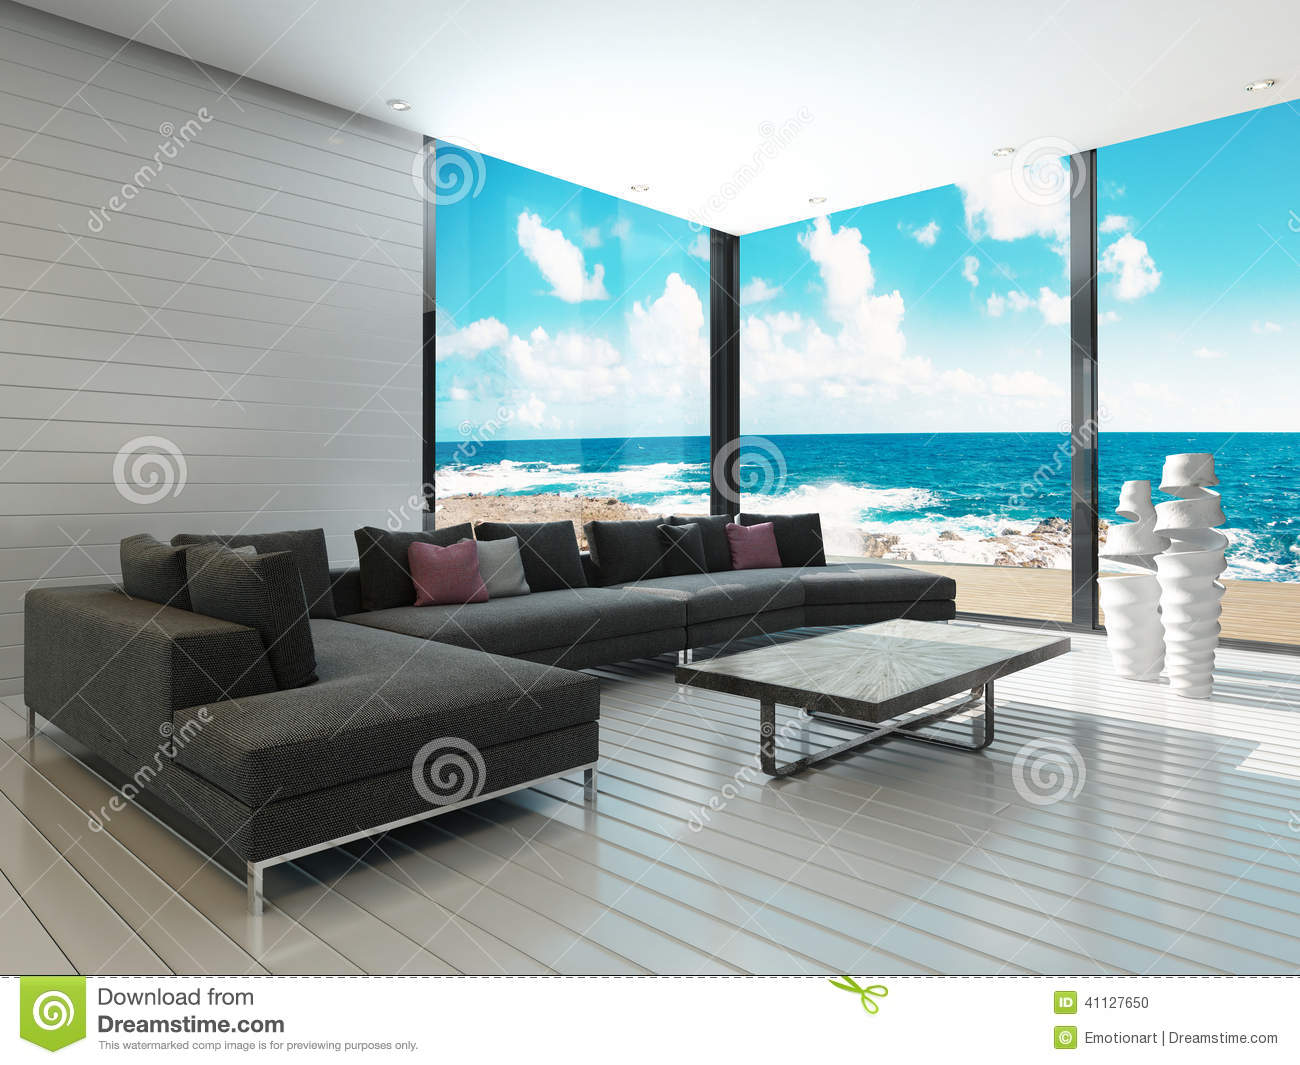 Stock Illustration Luxury Black Couch Maritime Style Living Room Sea View Image Image41127650 on urban retail design loft interior